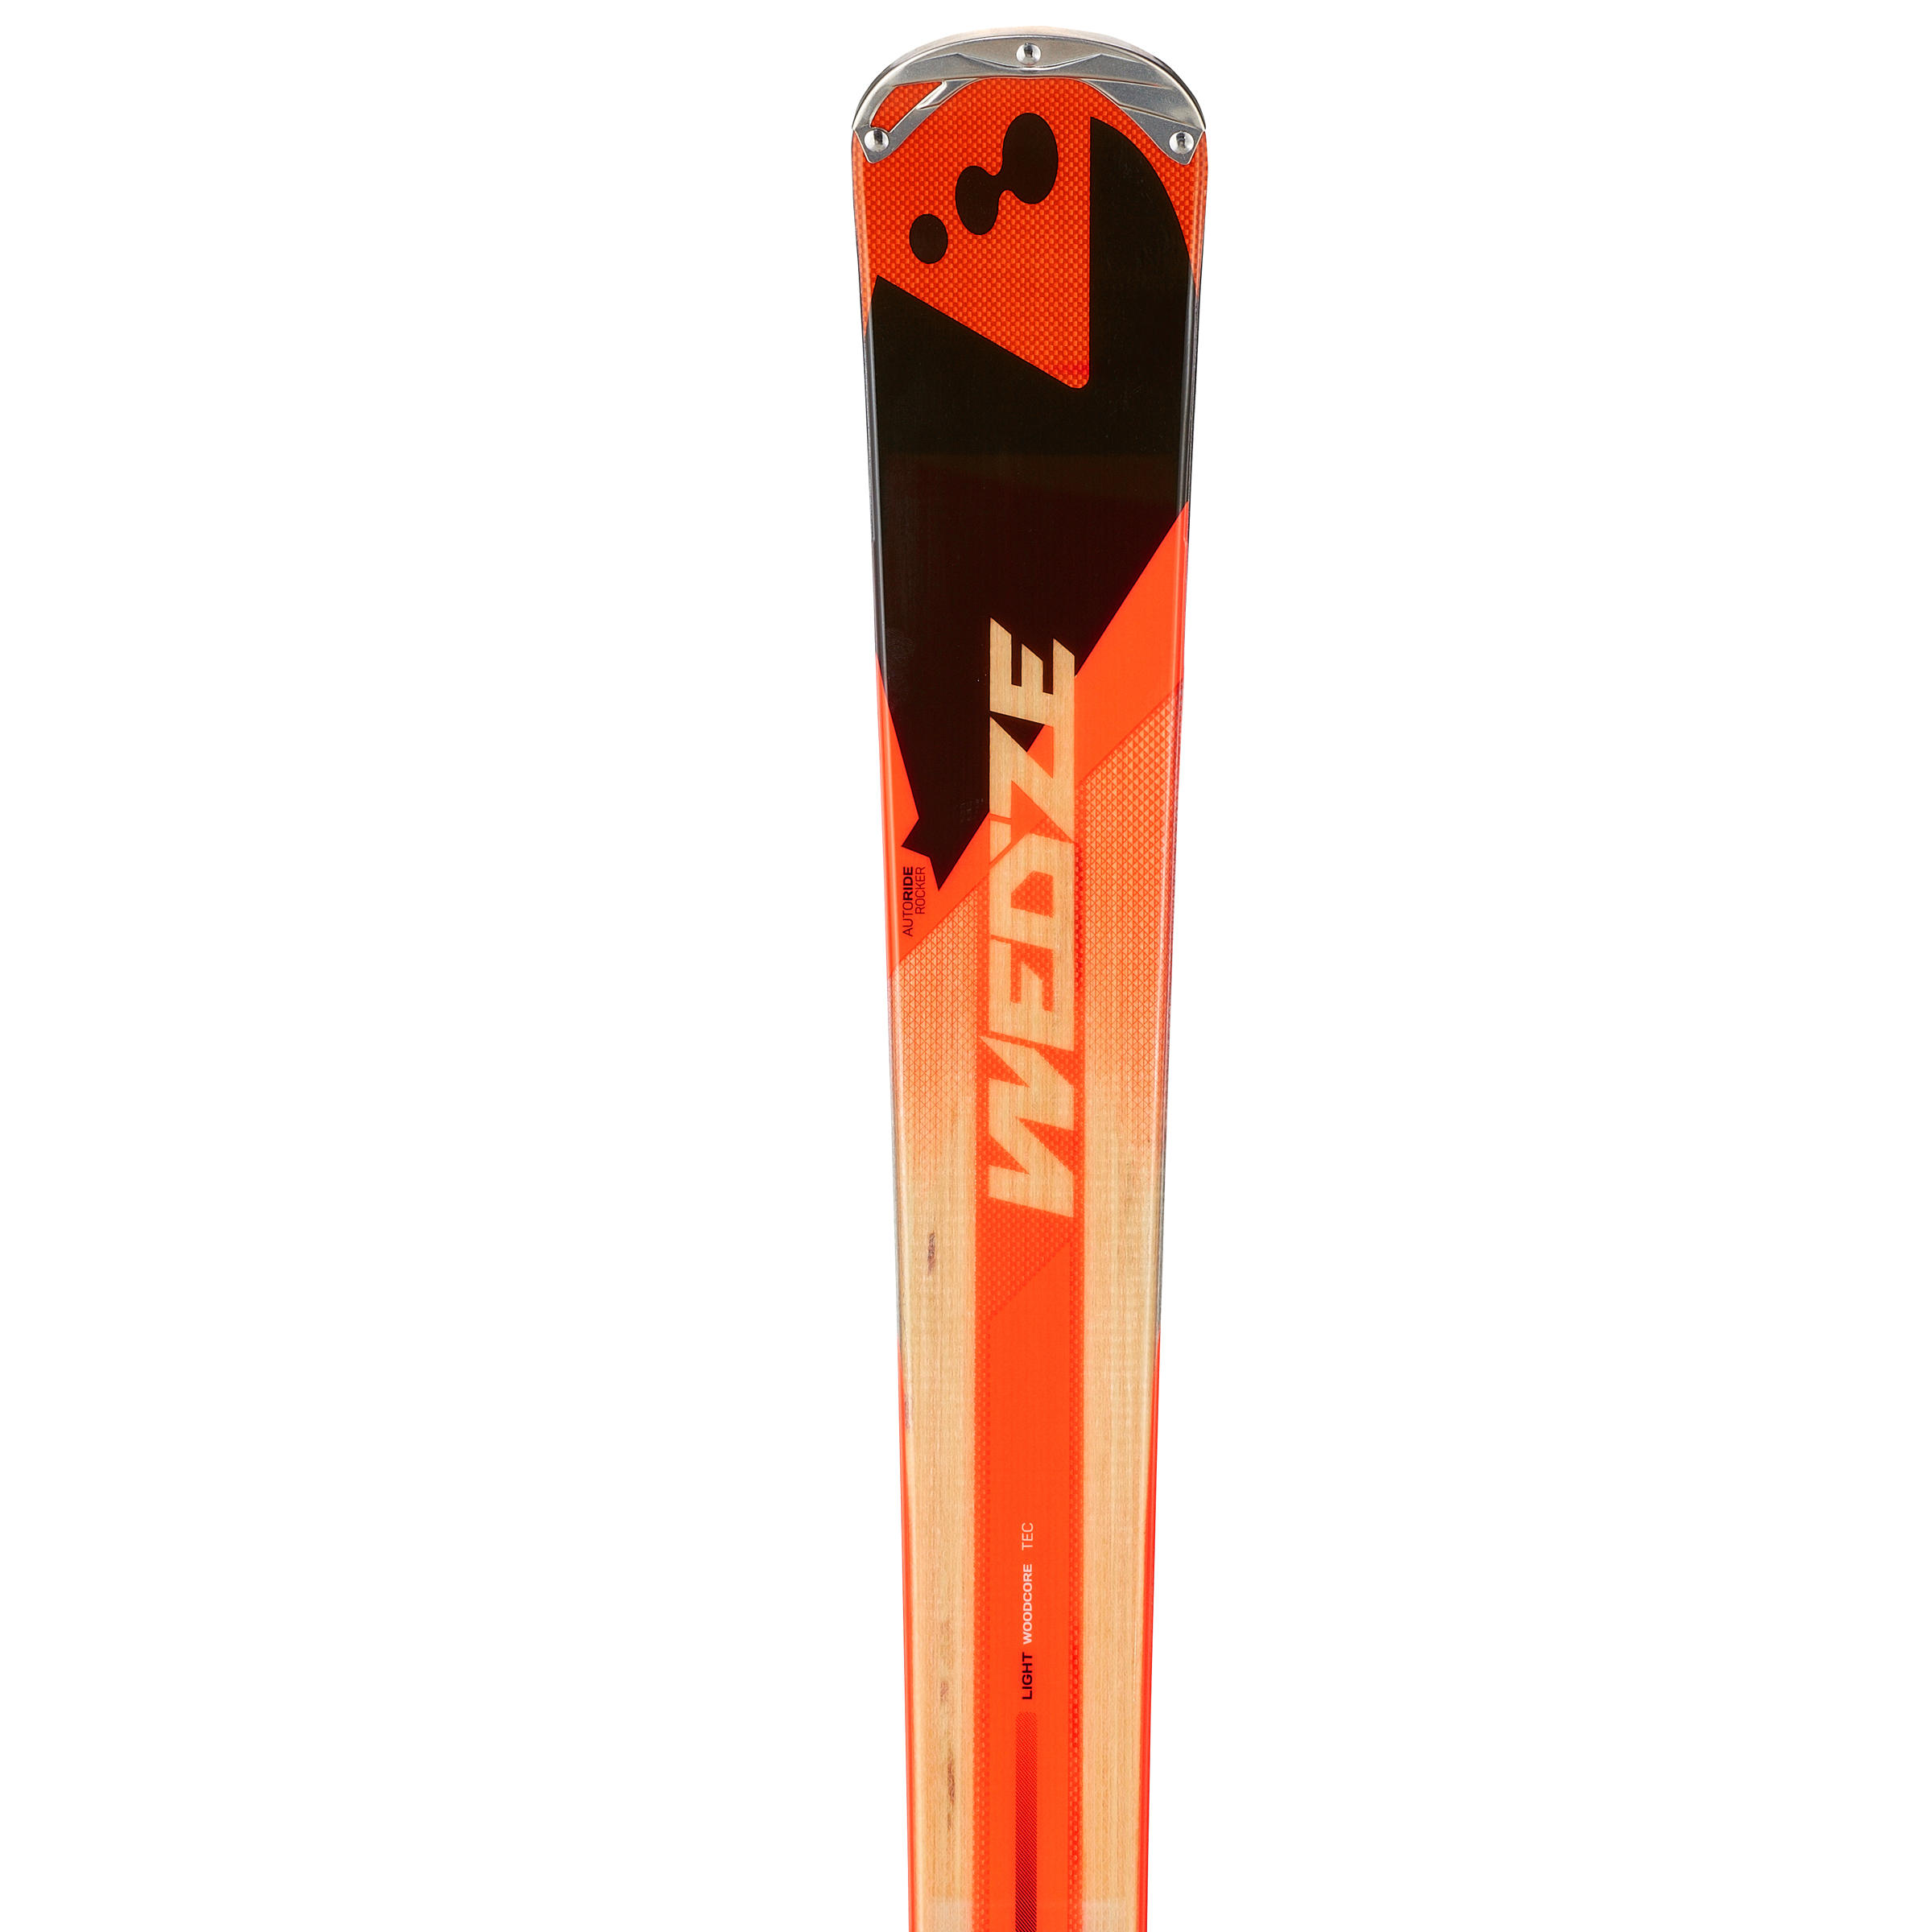 ALLMOUNTAIN XLANDER 500 DOWNHILL SKIING SKIS - RED